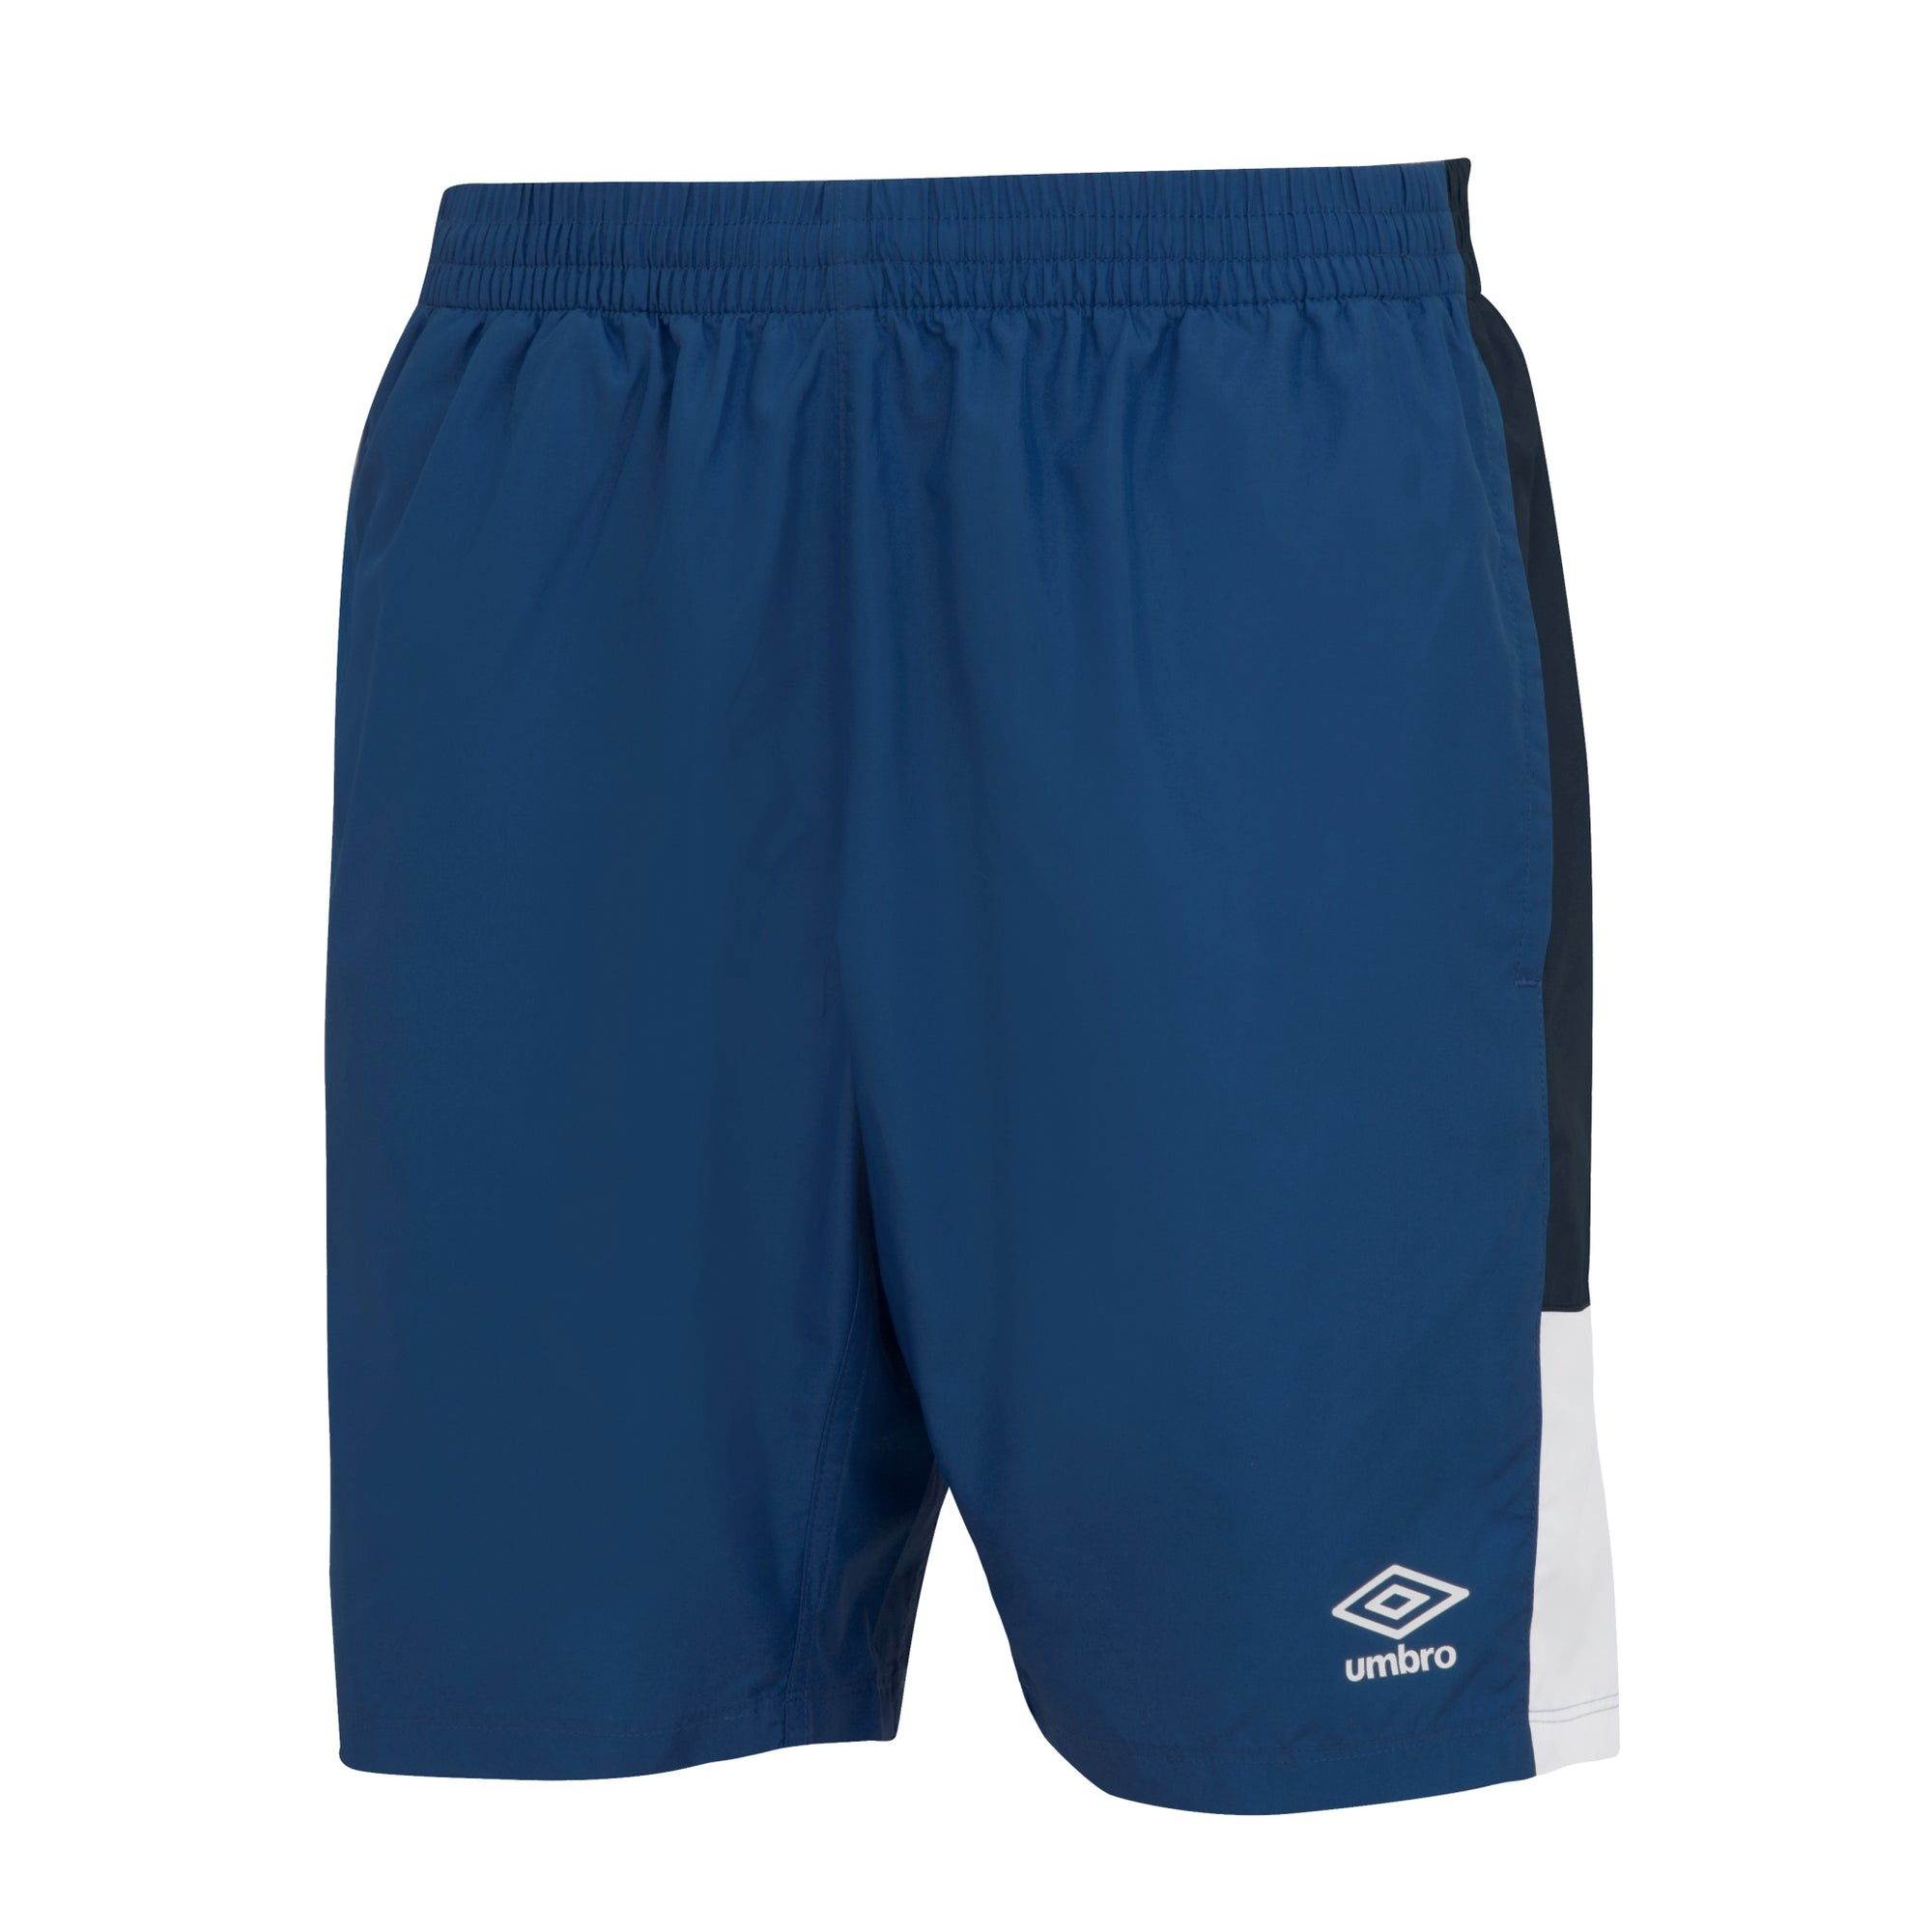 Umbro Training Short - Navy/Dark Navy/White